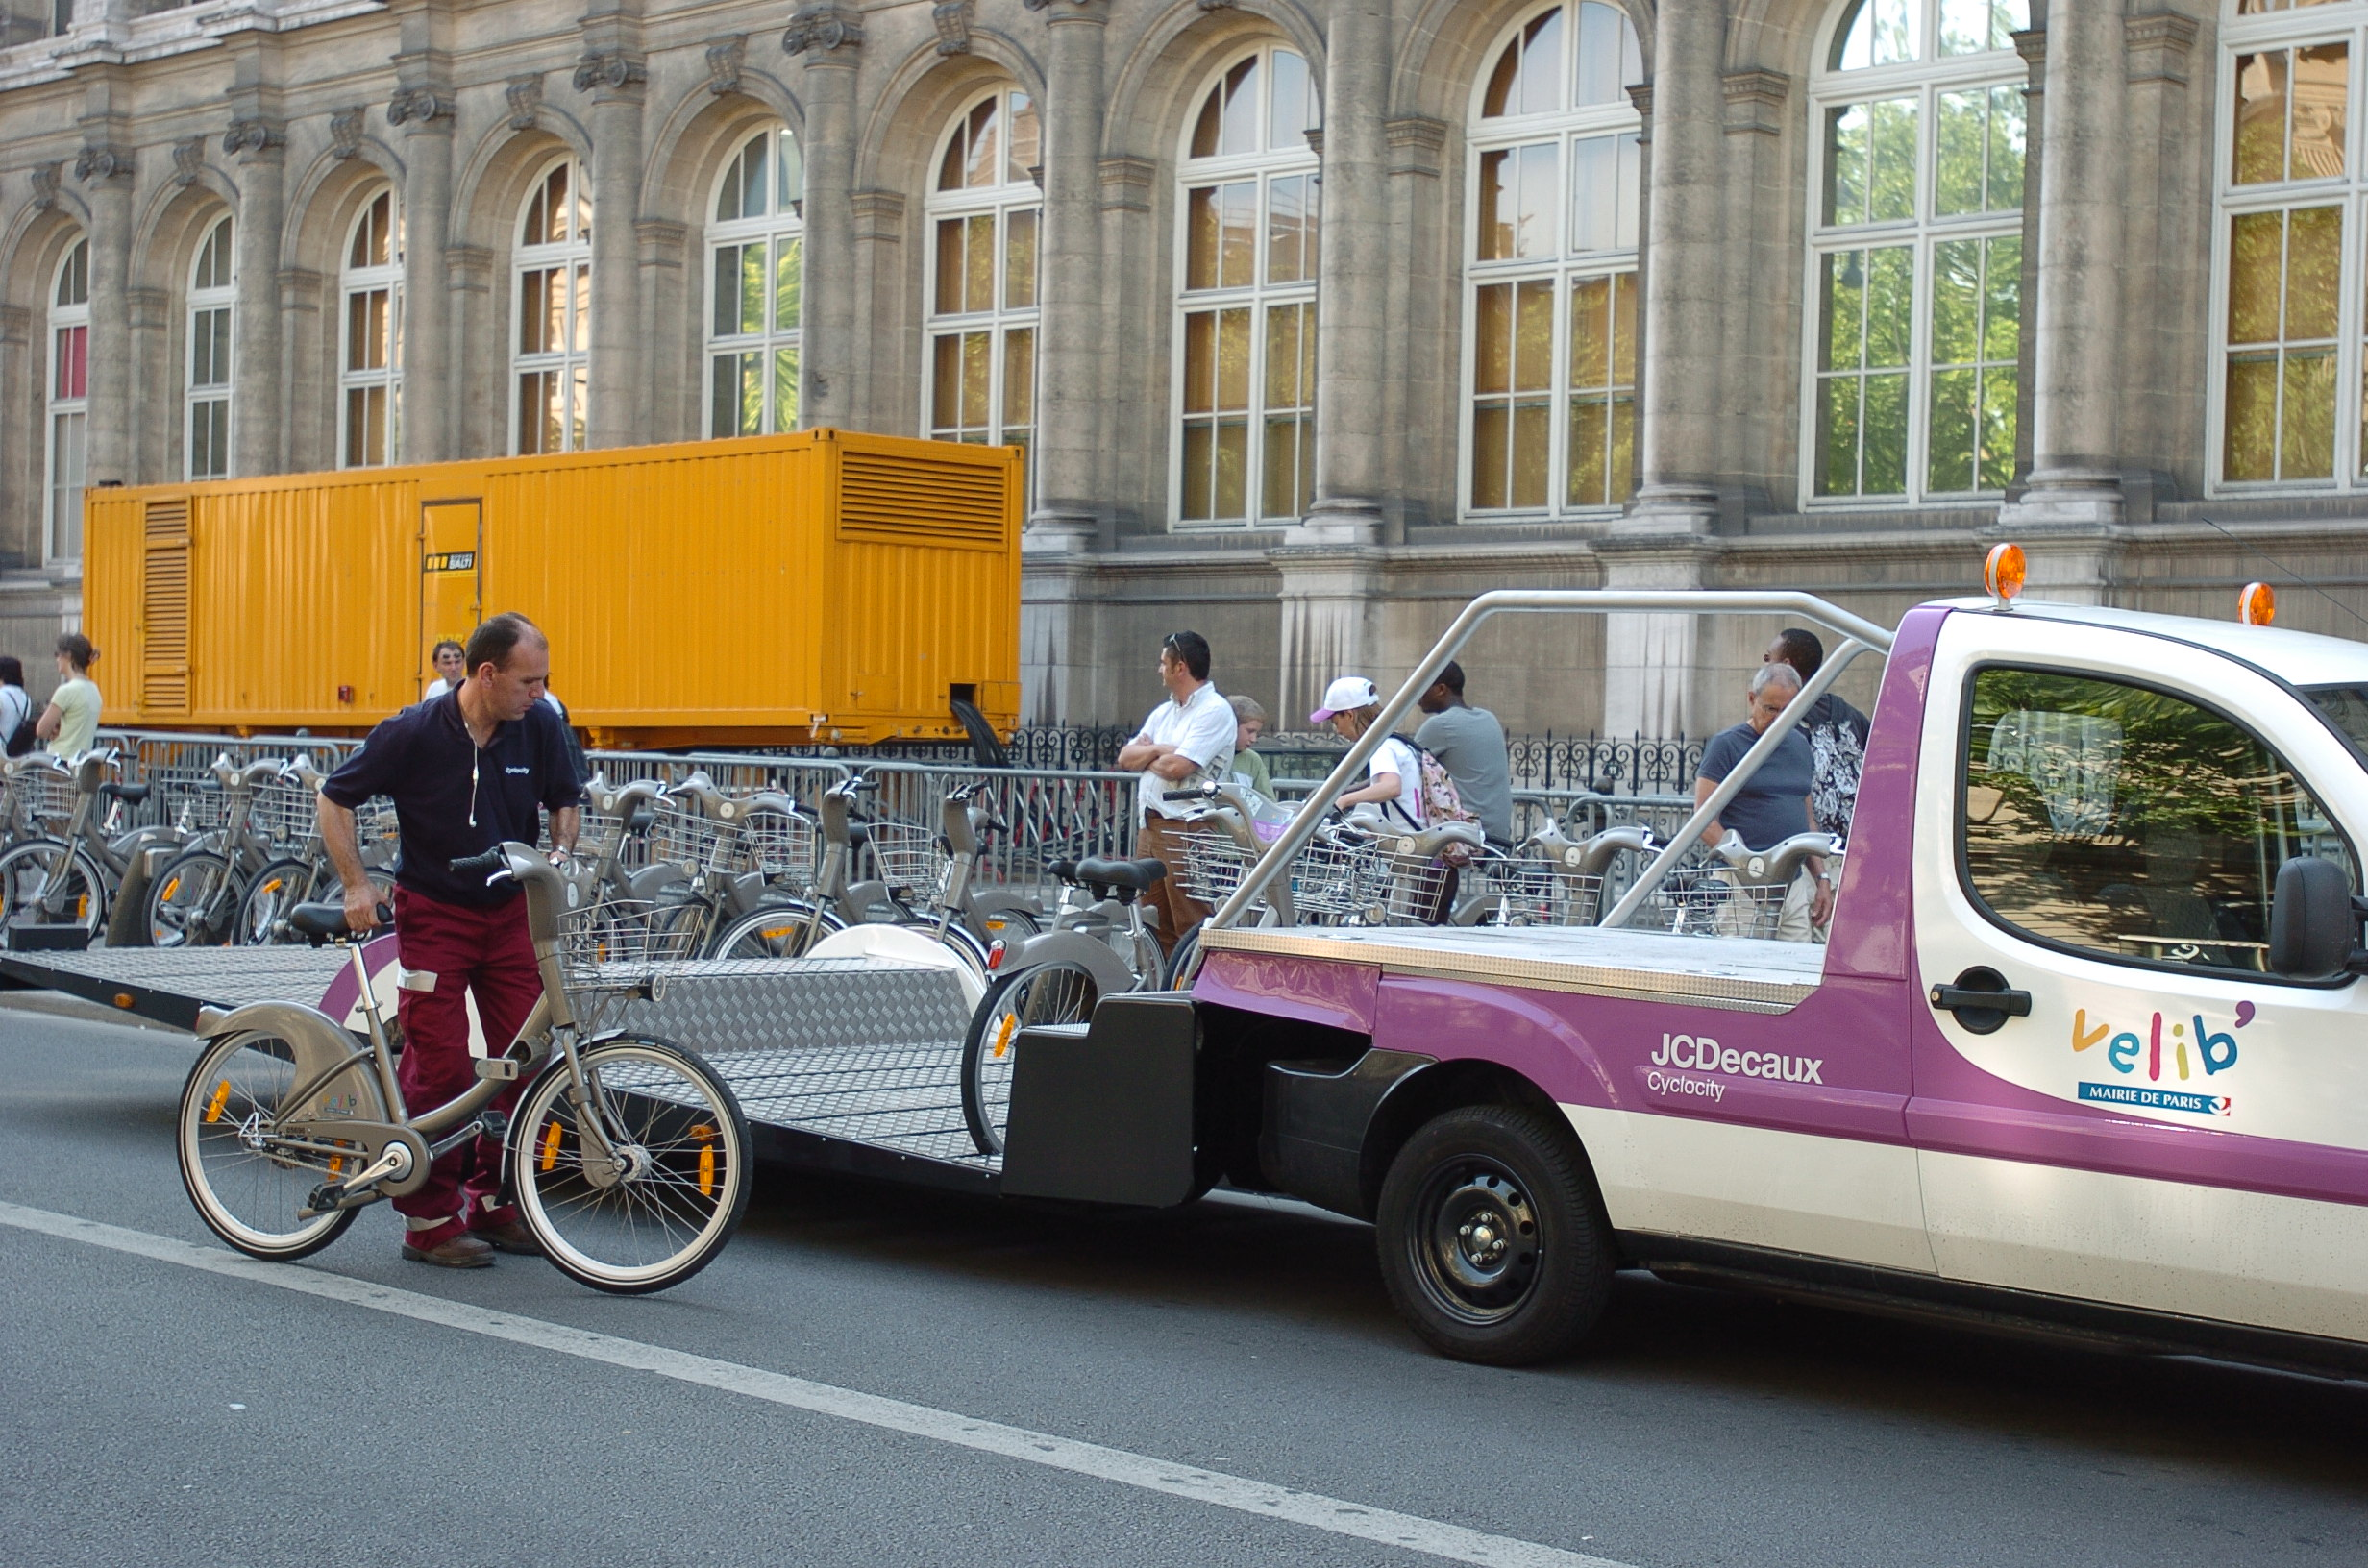 A Vélib' engineer regulating the stock of bicycles available. Credits: Mairie de Paris, 2012